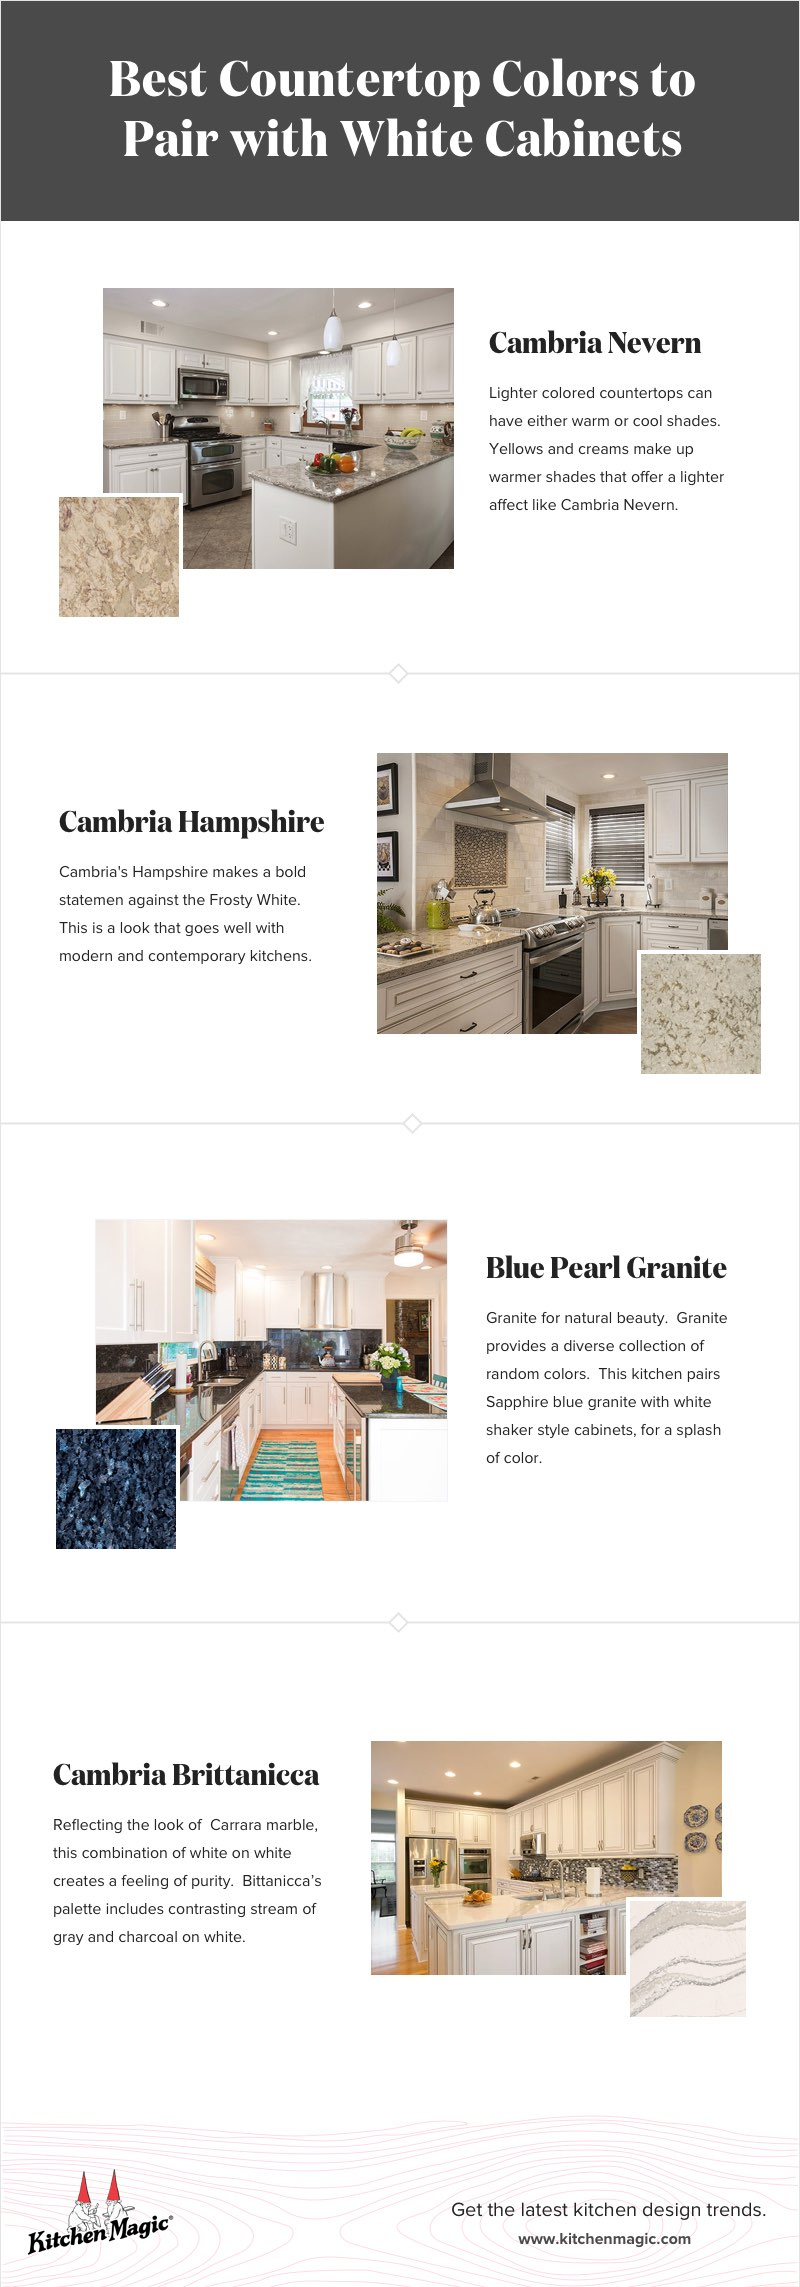 Best Countertop Colors to Pair with White Cabinets Infographic